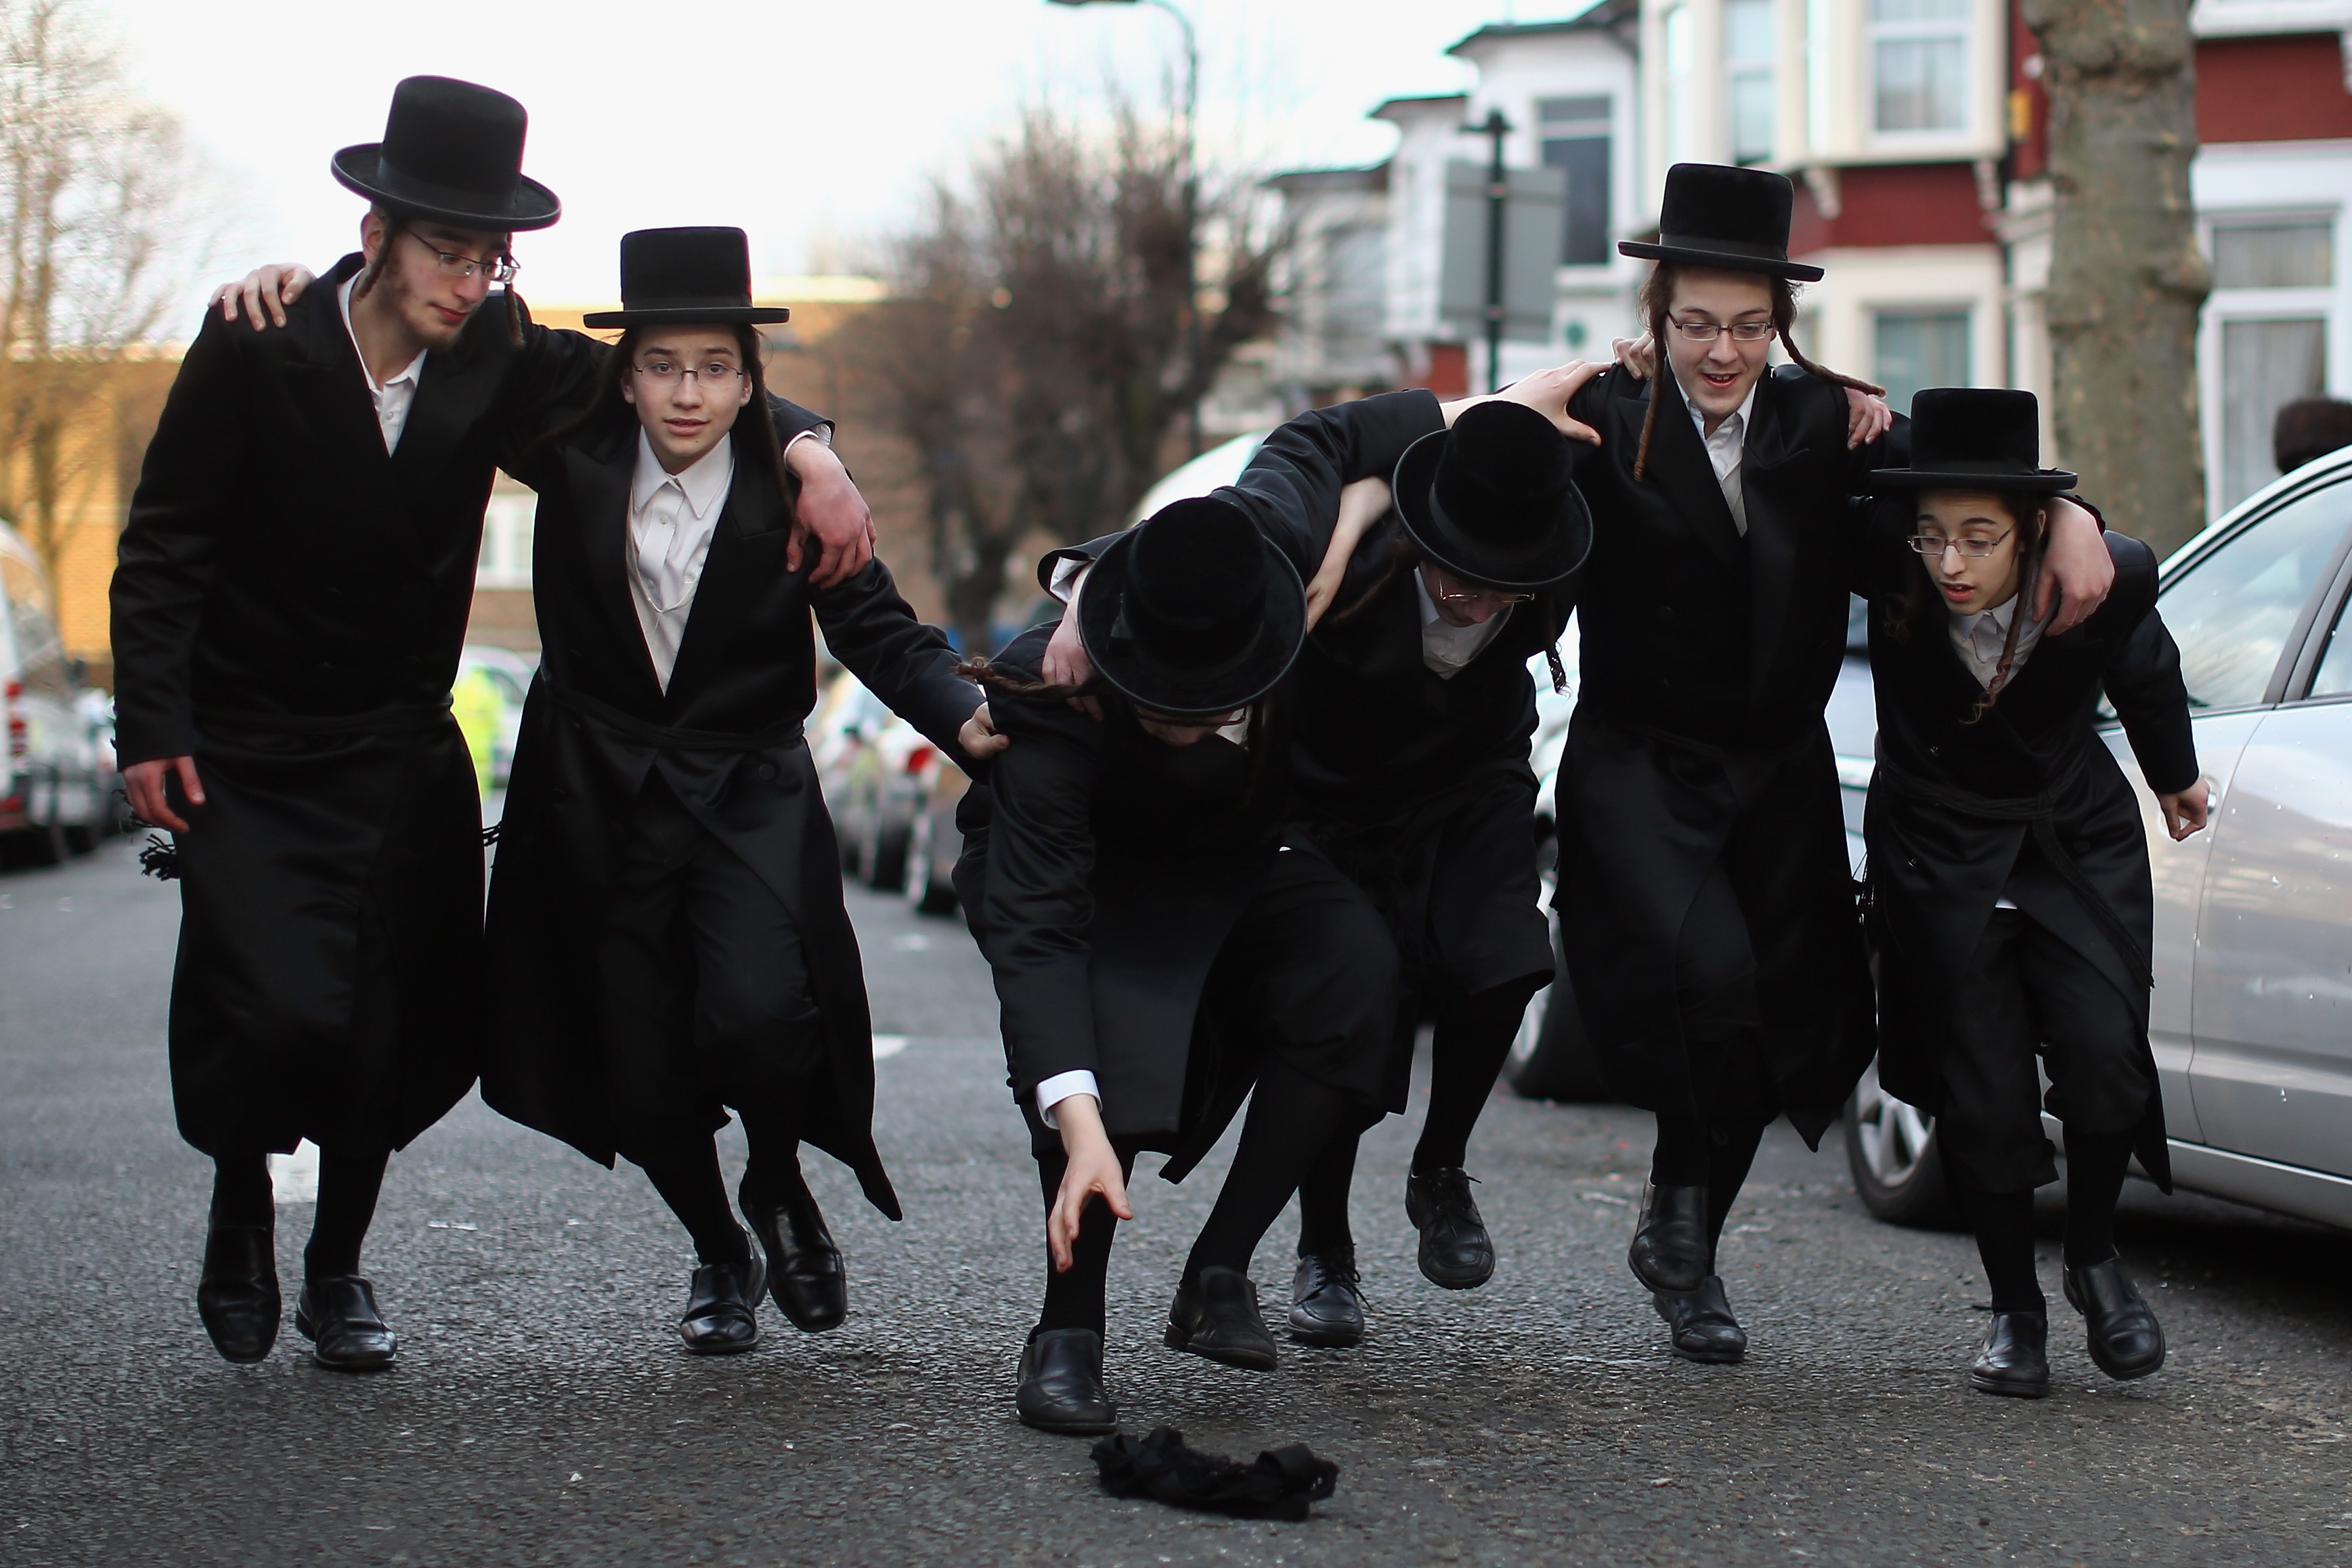 London's Jewish Community Celebrate Purim